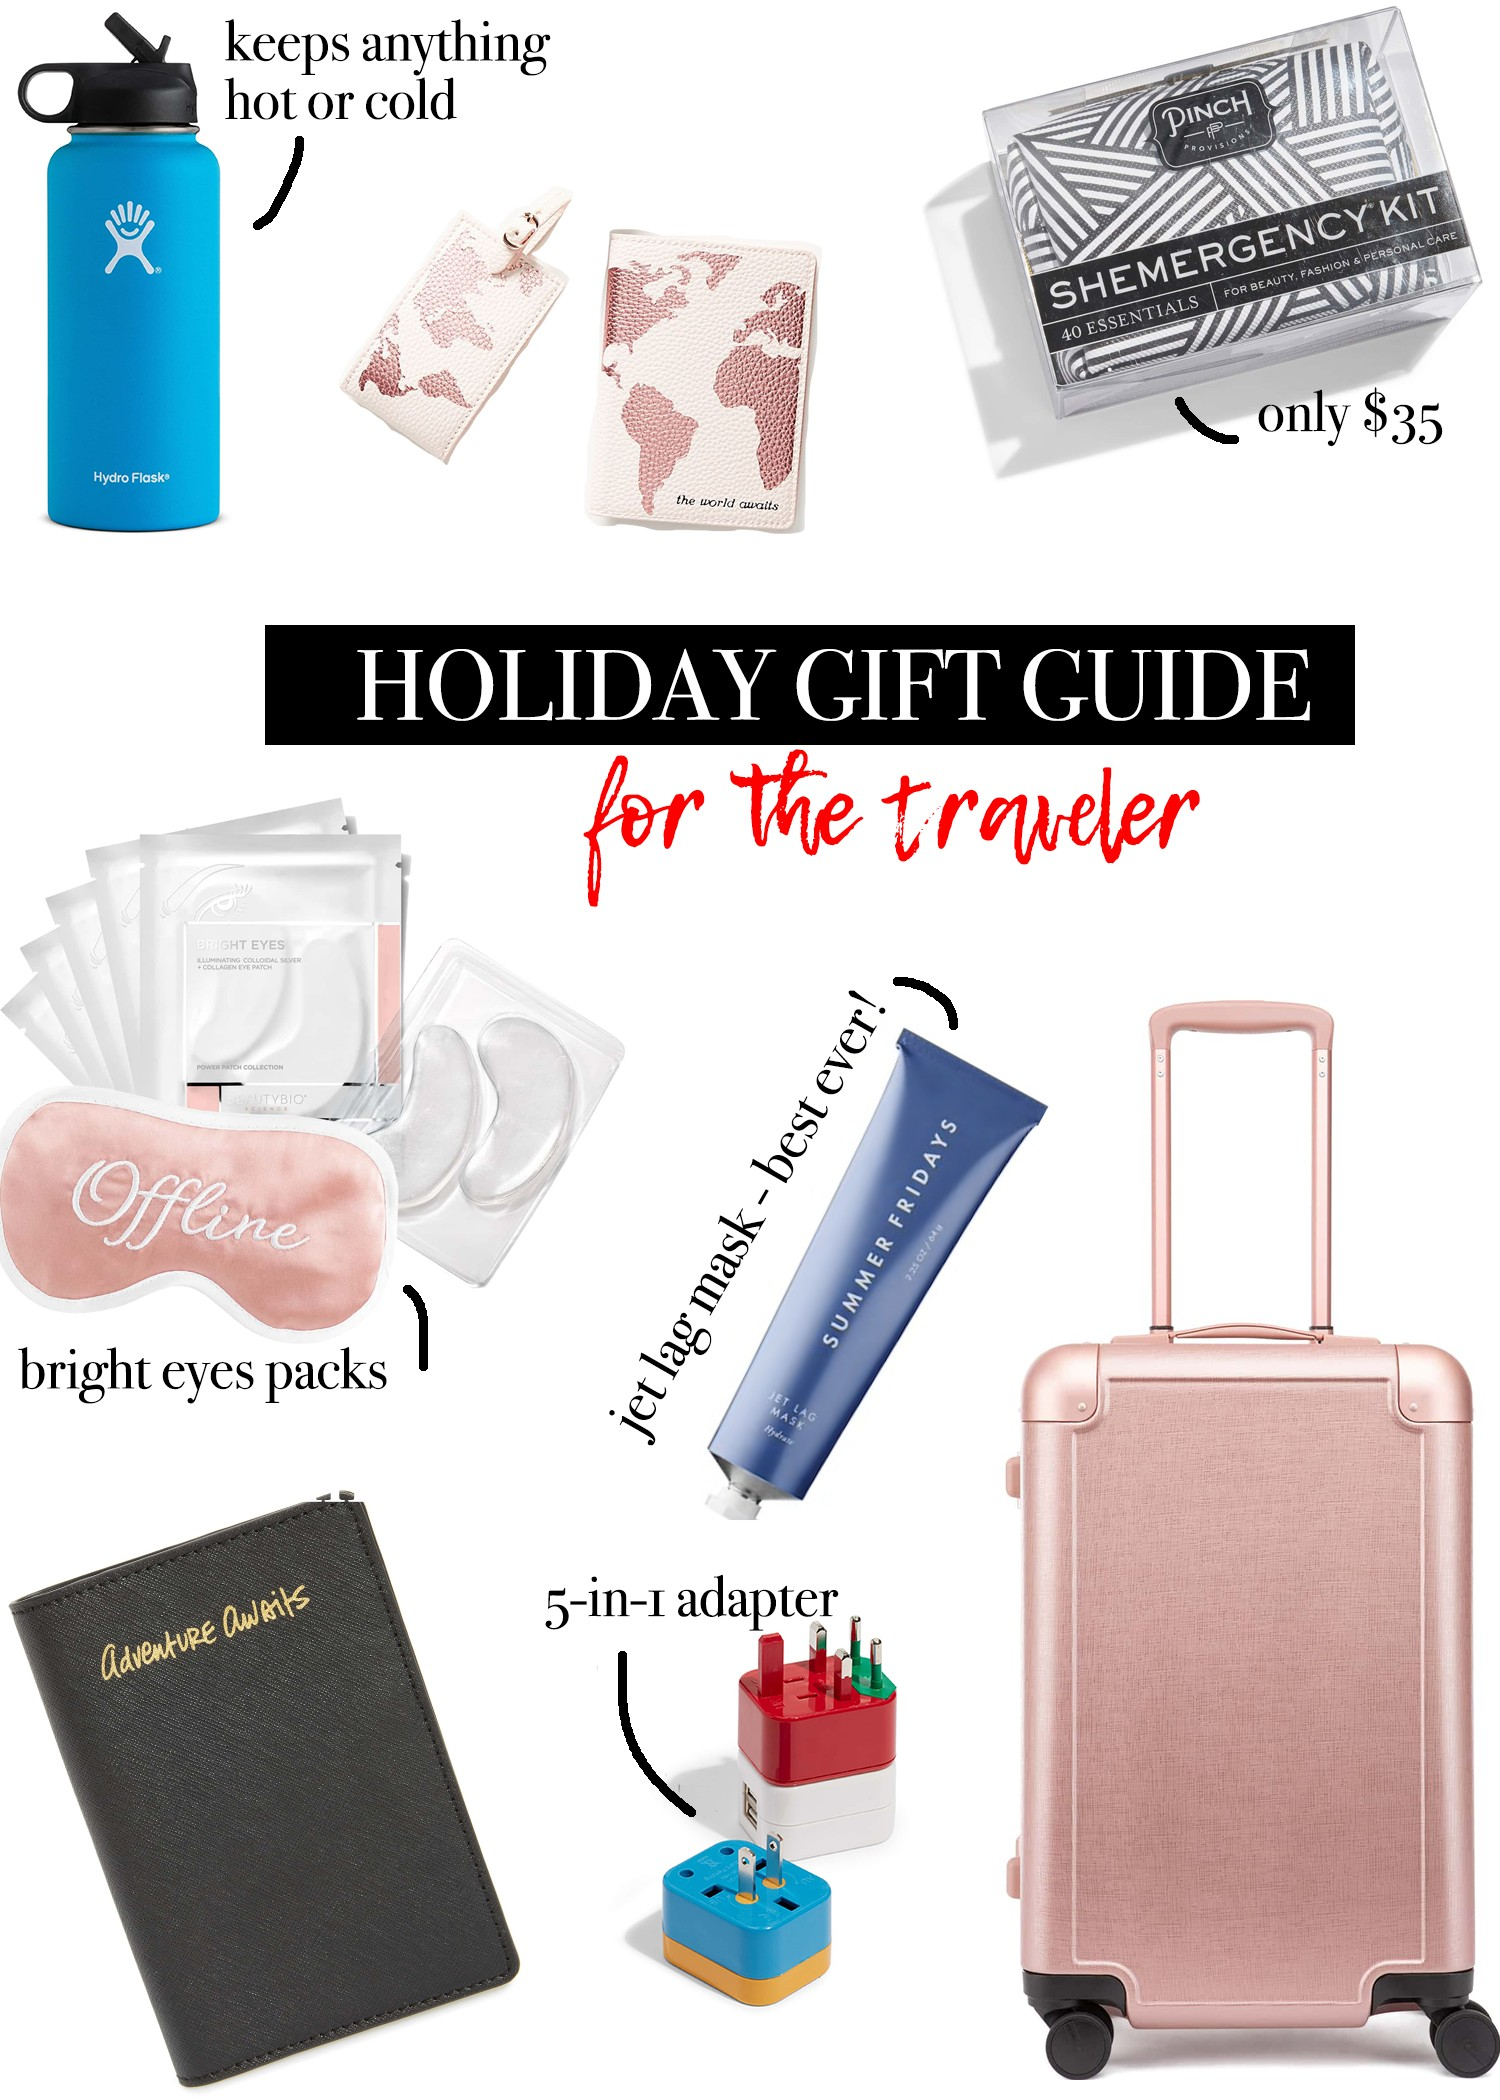 CHRISTMAS GIFTS FOR THE TRAVELER | The Navy Blonde